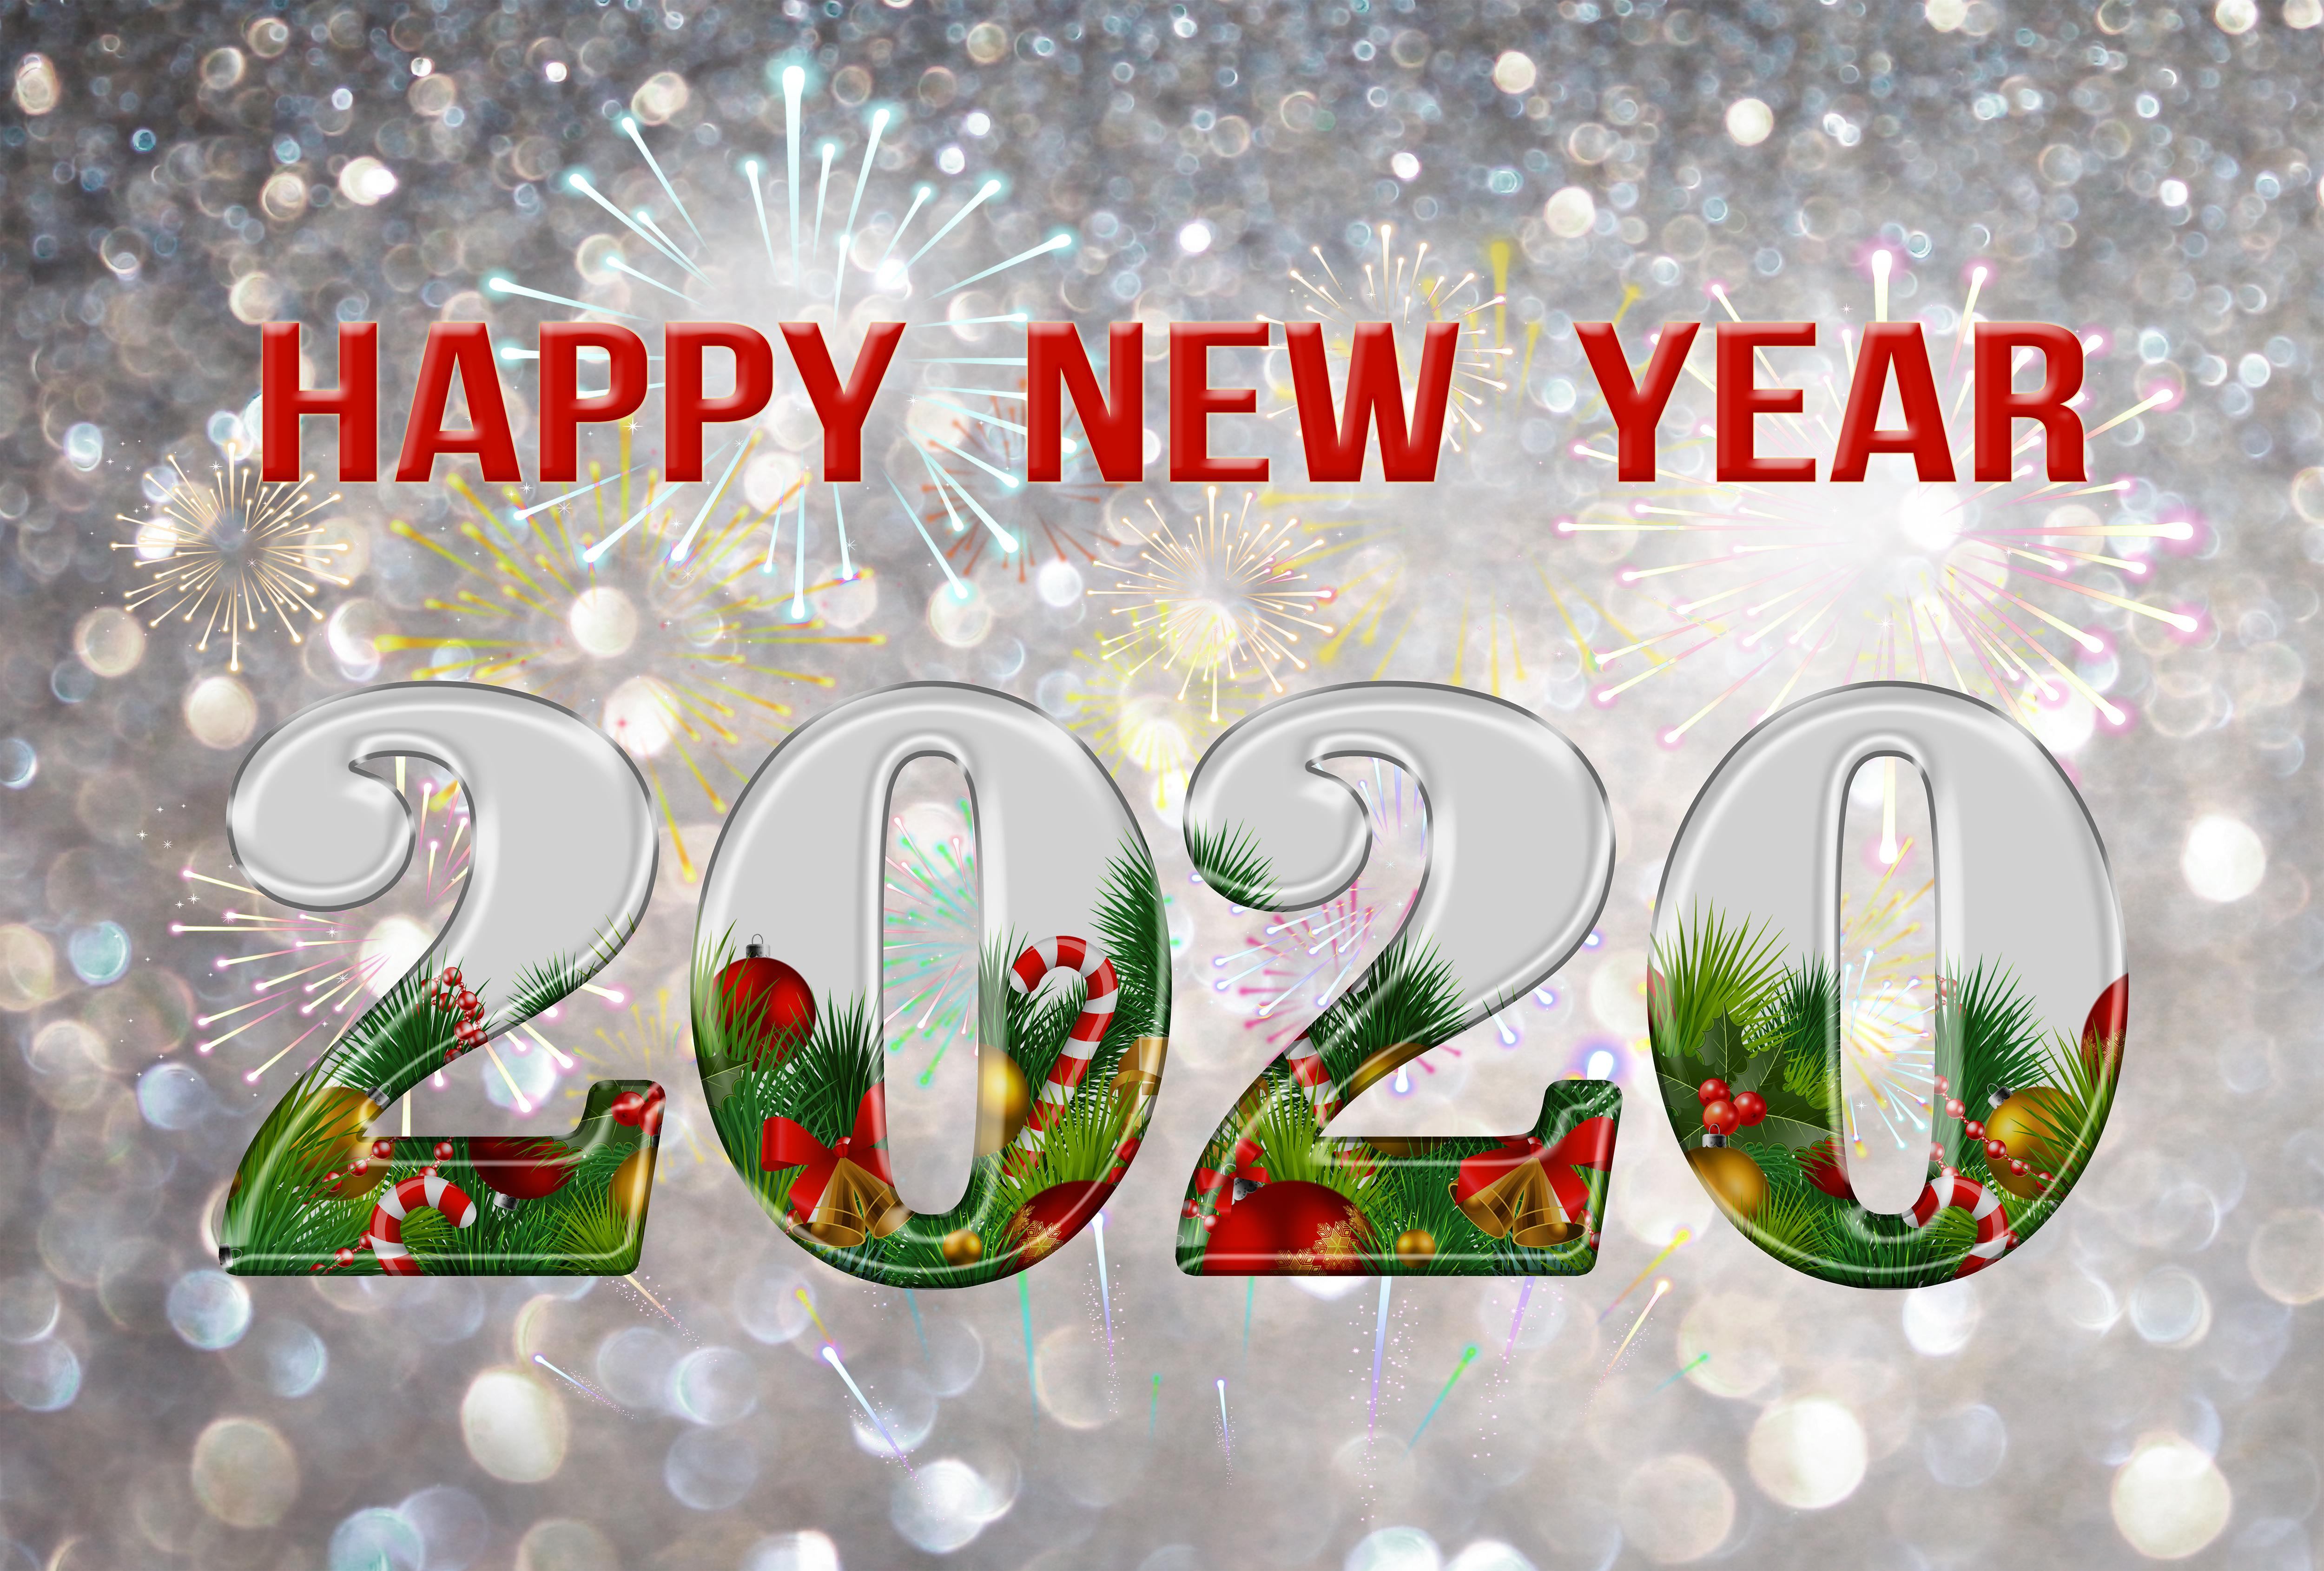 Happy New Year 2020 Backgrounds